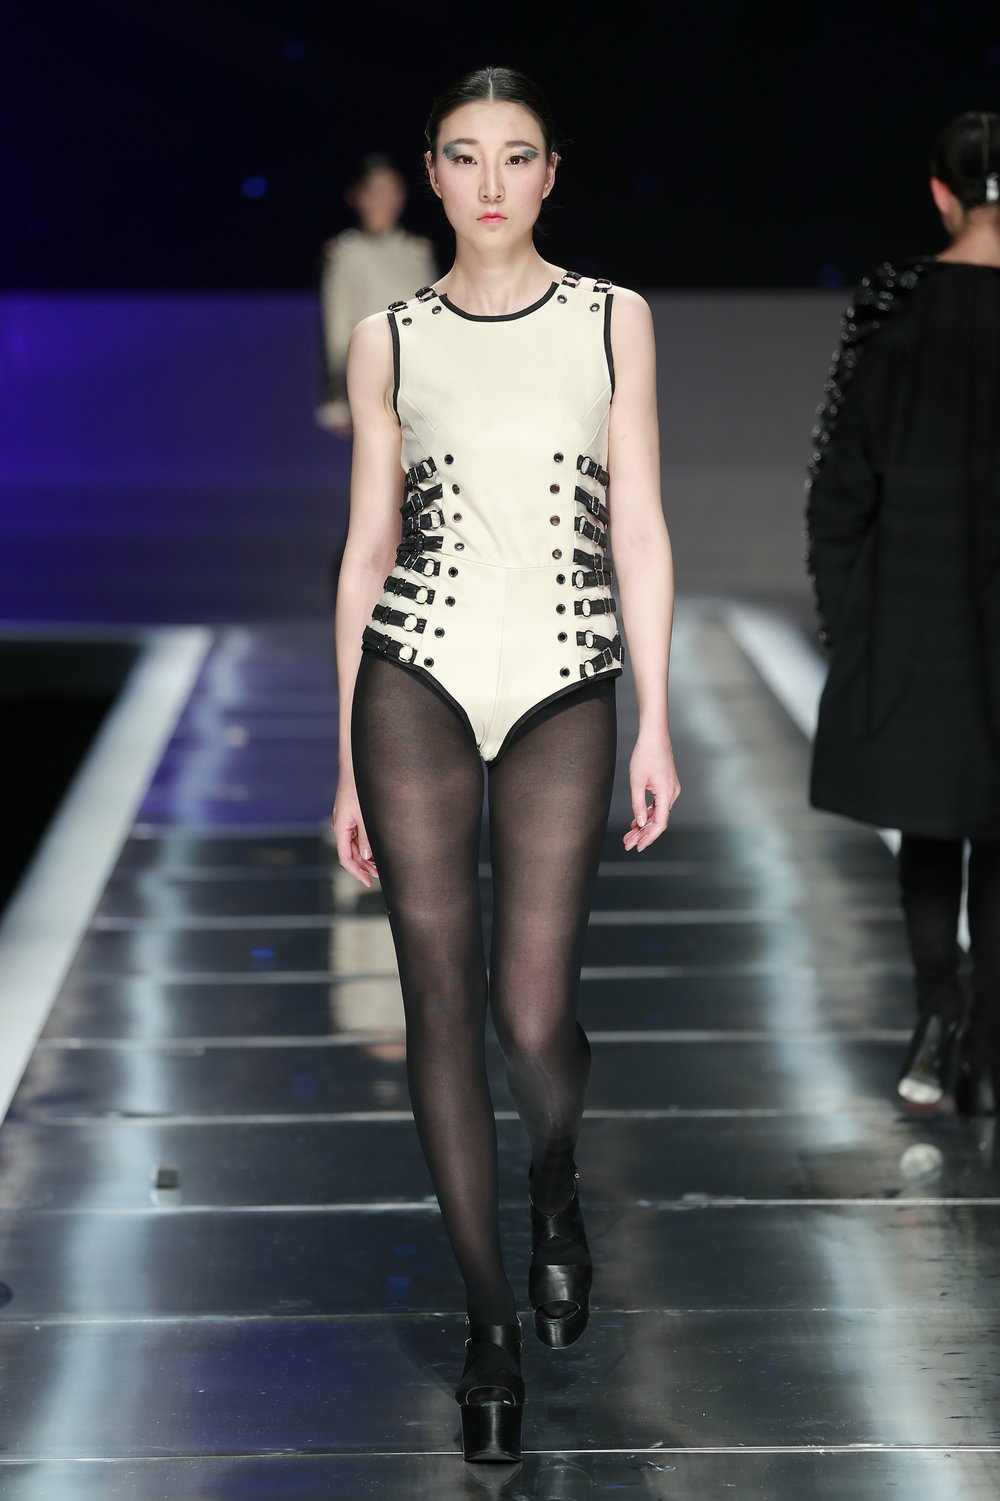 China-Look2-Overall-Award-Fashion-Week-Show.JPG